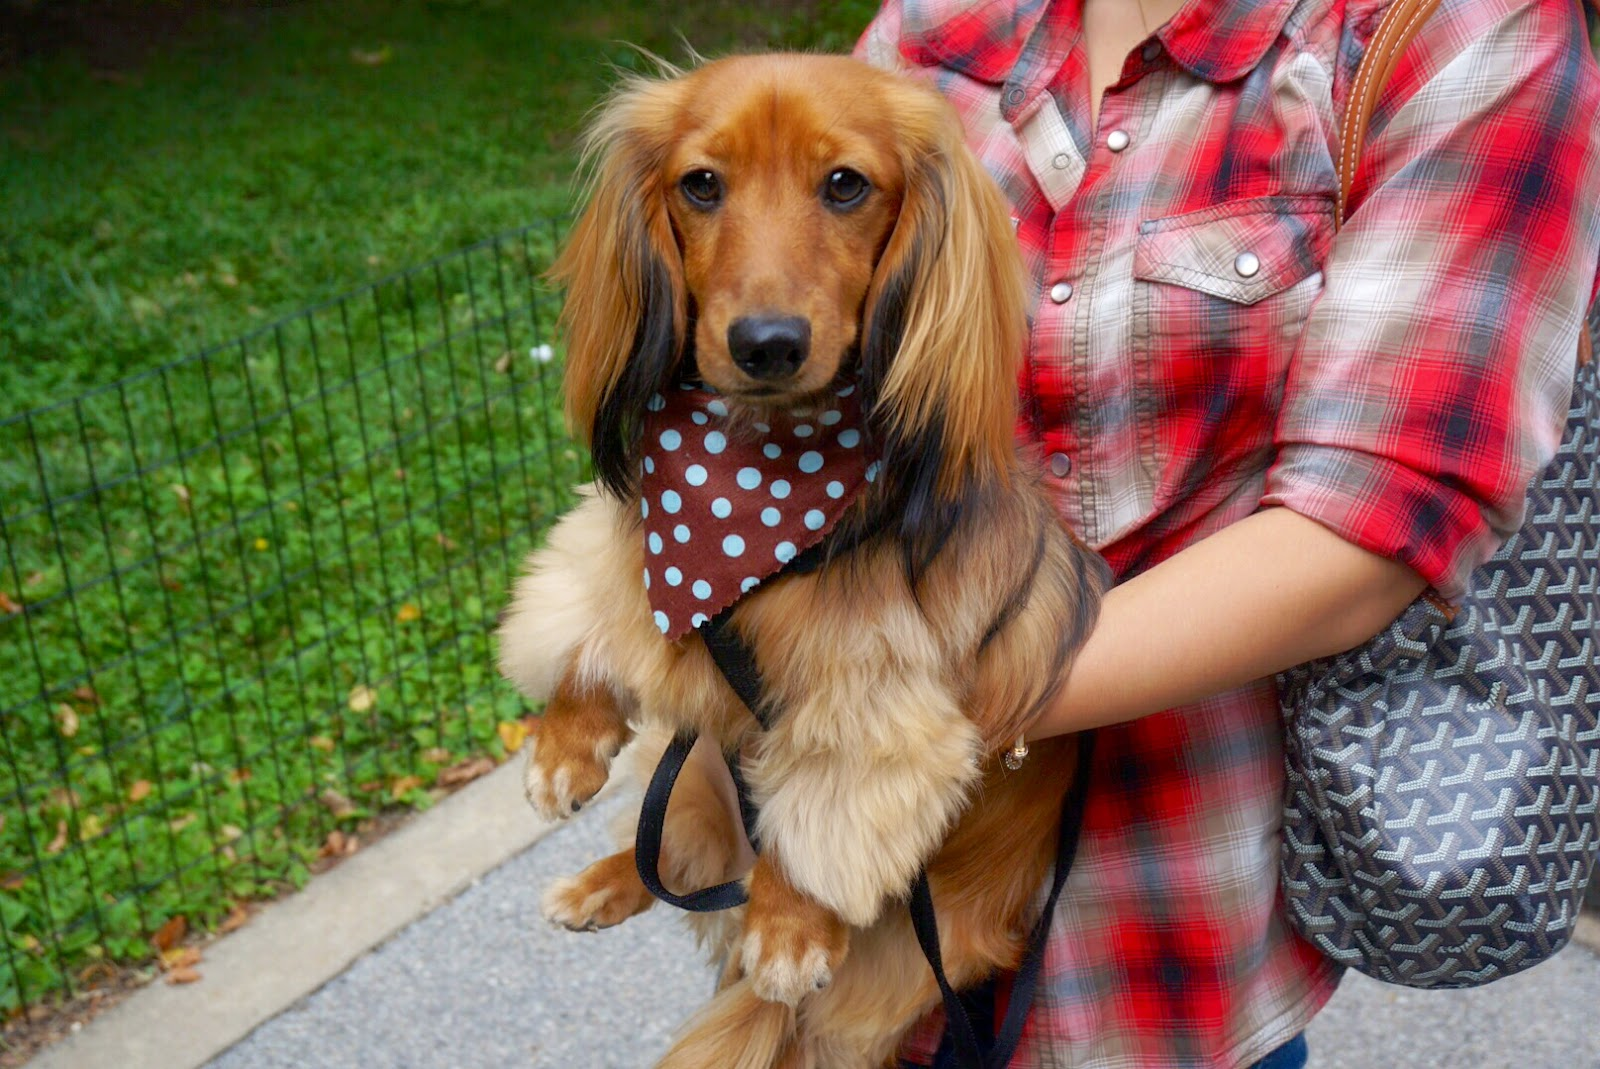 Les bananas how to groom a long hair dachshund unleashed spa i think i paid like 20 30 more than a full grooming session at petco including tip but the result is totally worth it i think leos session at petco solutioingenieria Images